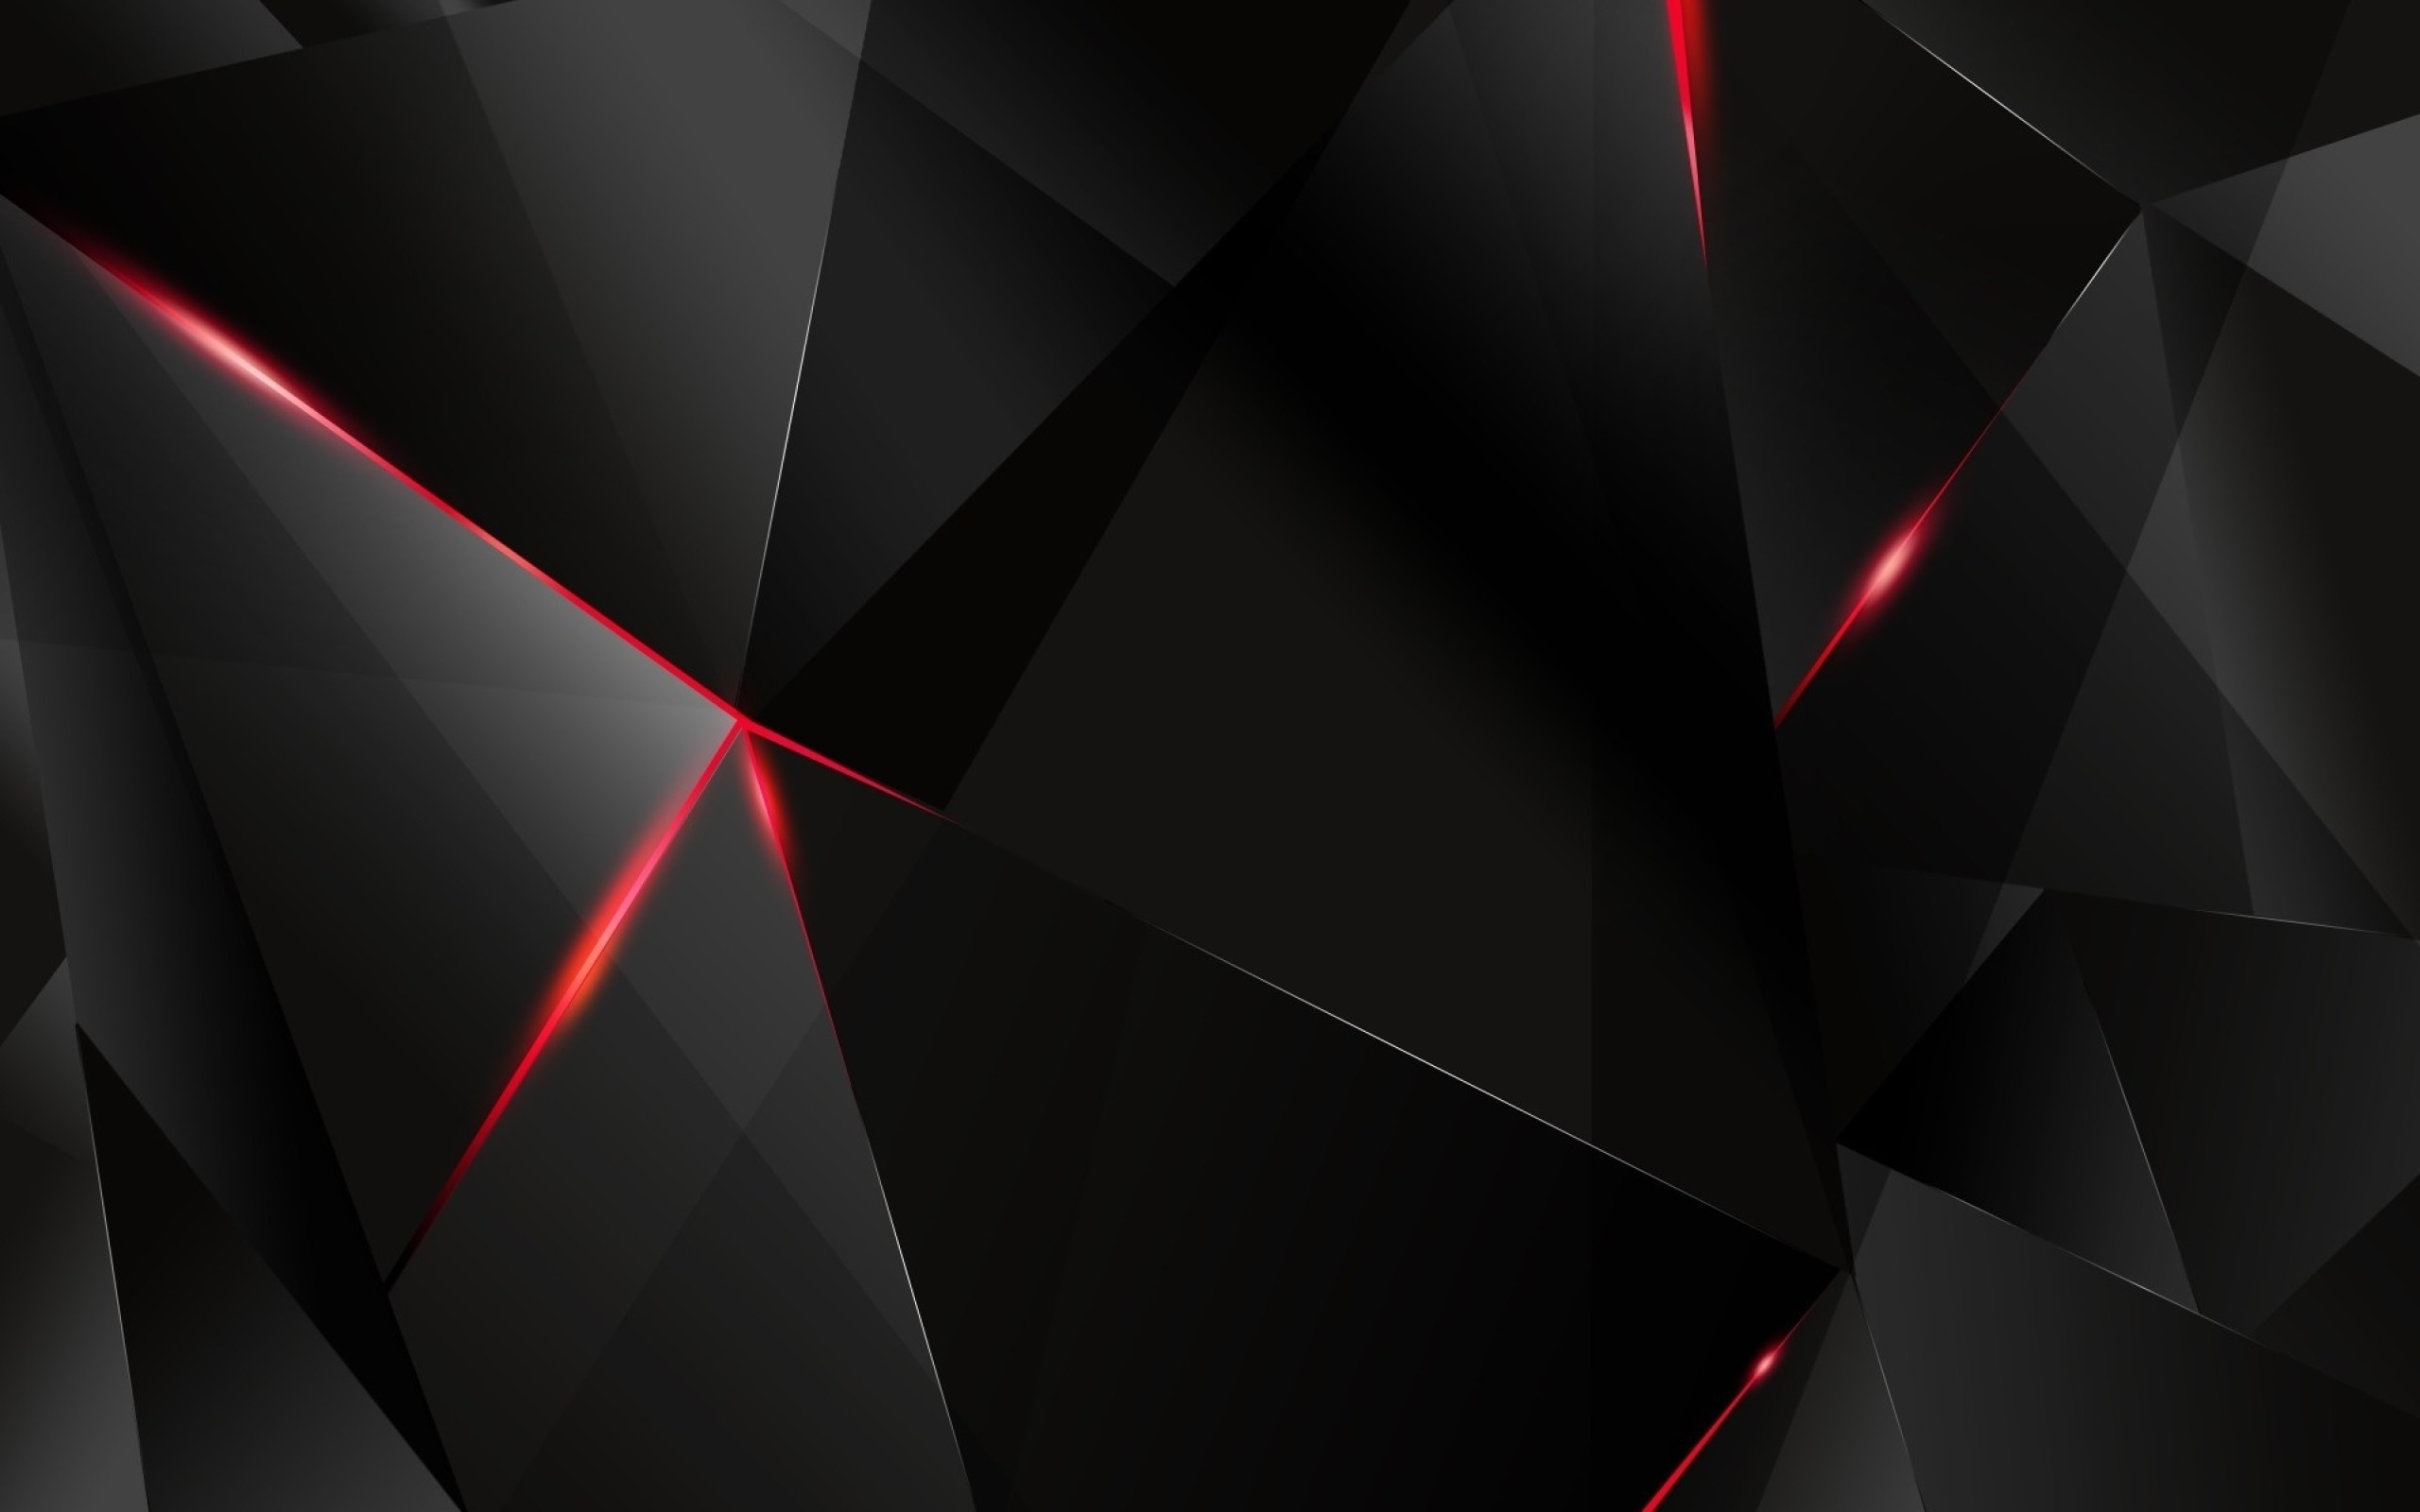 Iphone Wallpaper Resolution Black And Red Wallpaper 183 ① Download Free Stunning